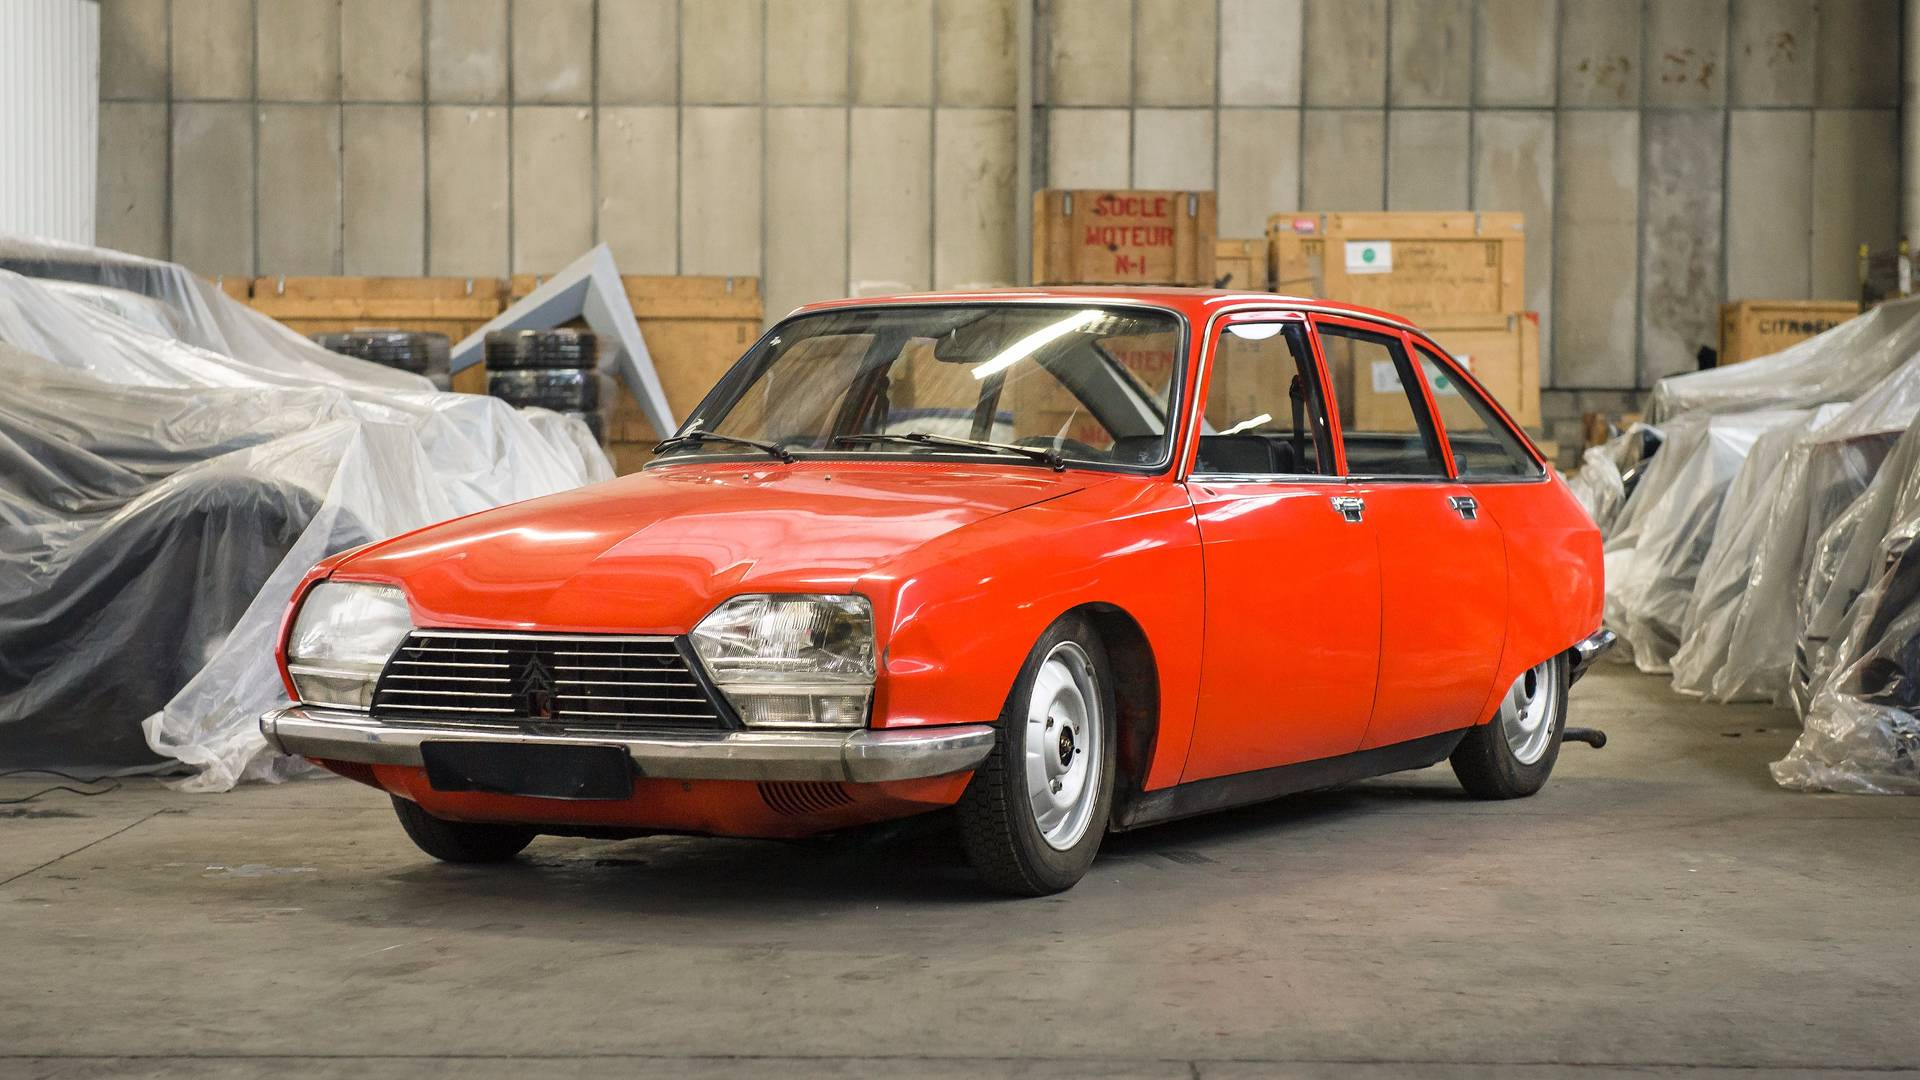 The 65 Cars From The Citroën Heritage Collection Have Been Sold